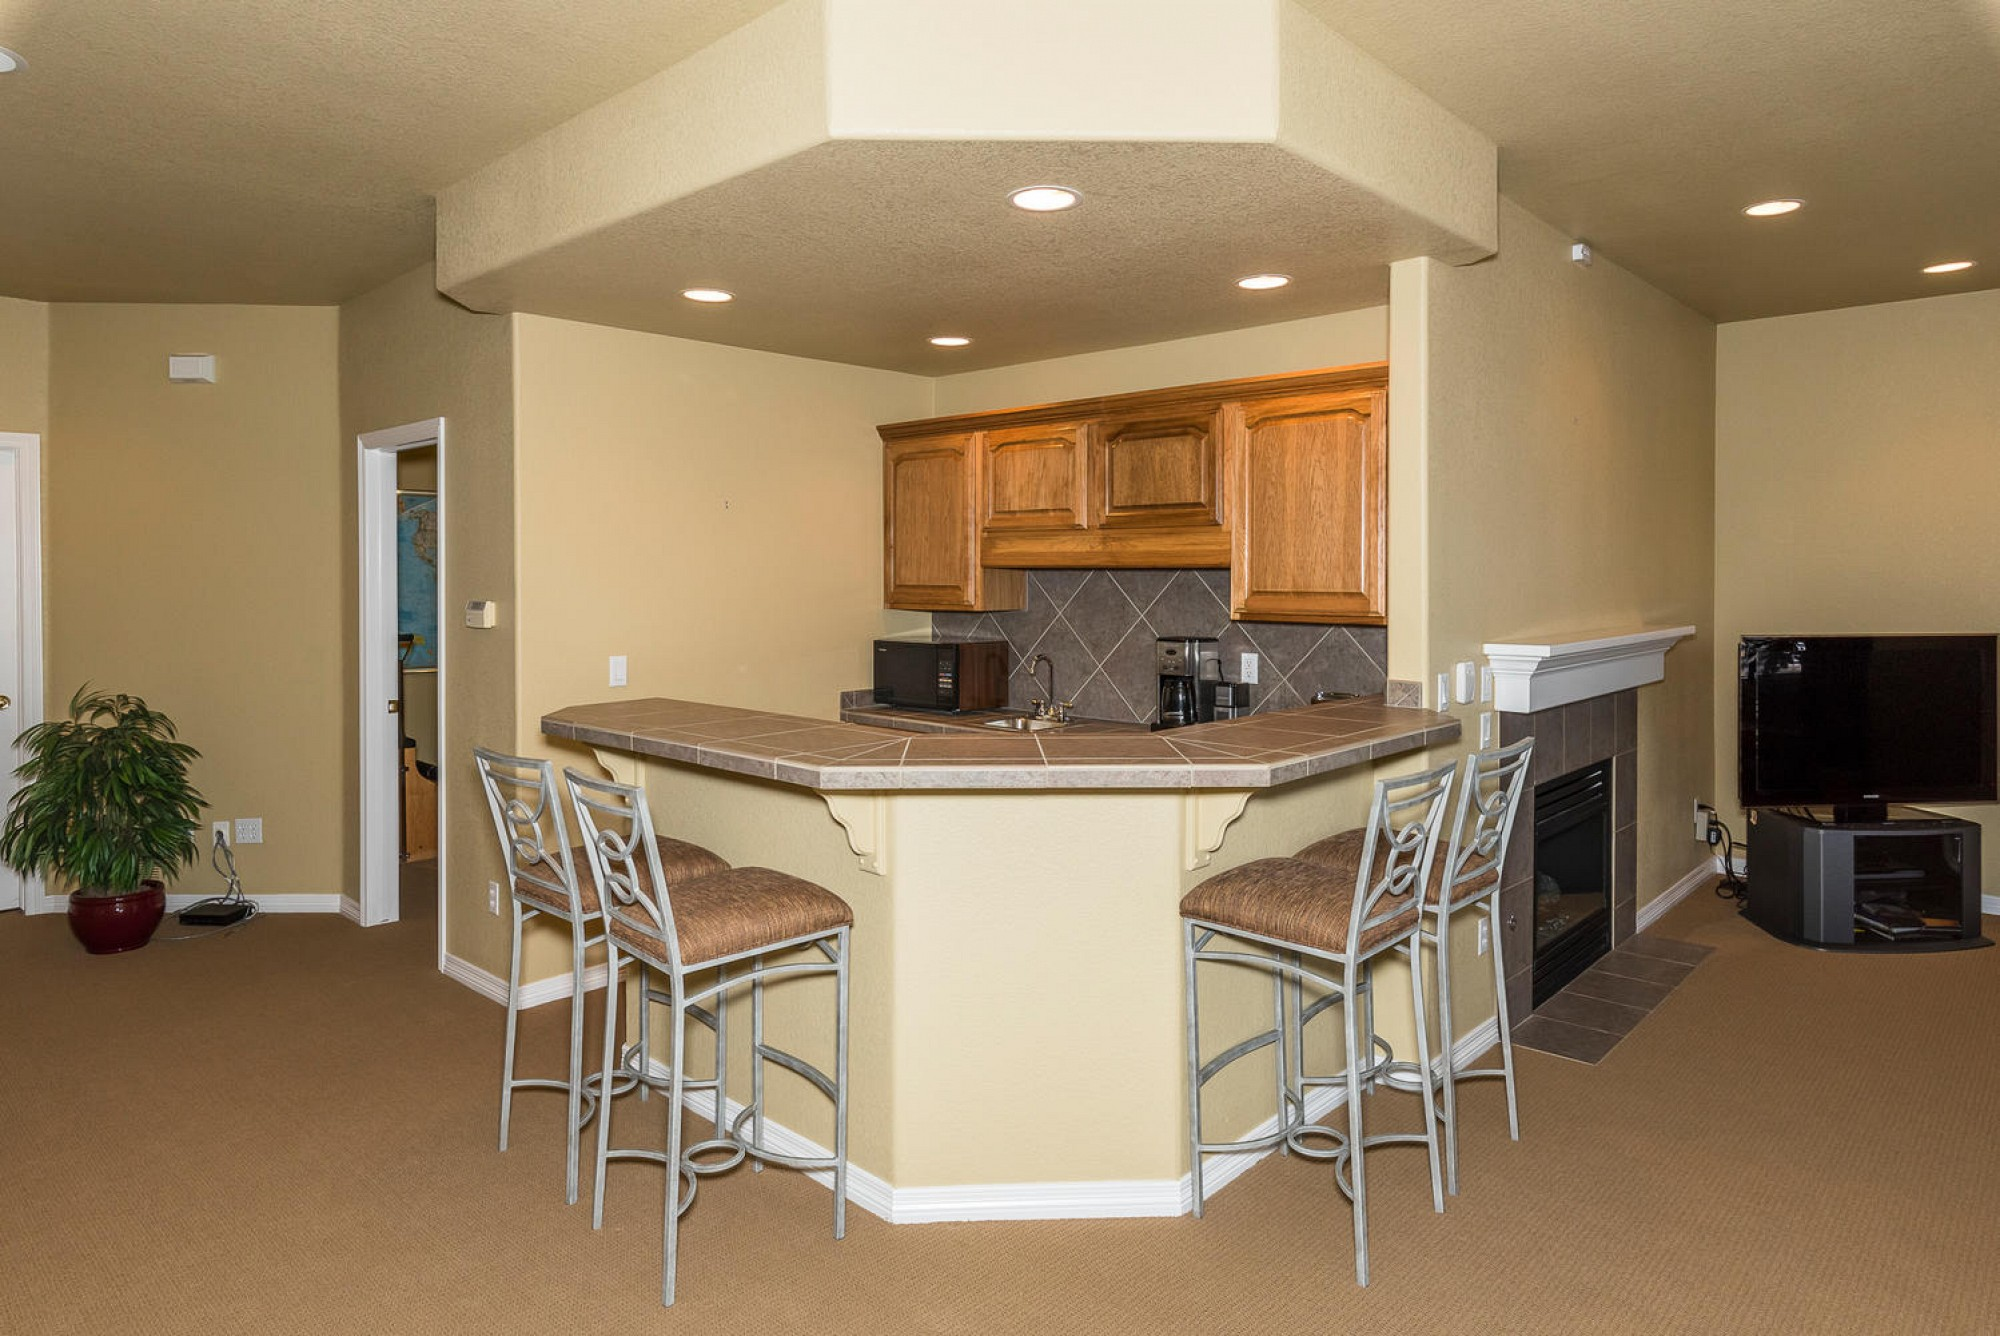 8217 S. Forest Court, Centennial, CO 80122